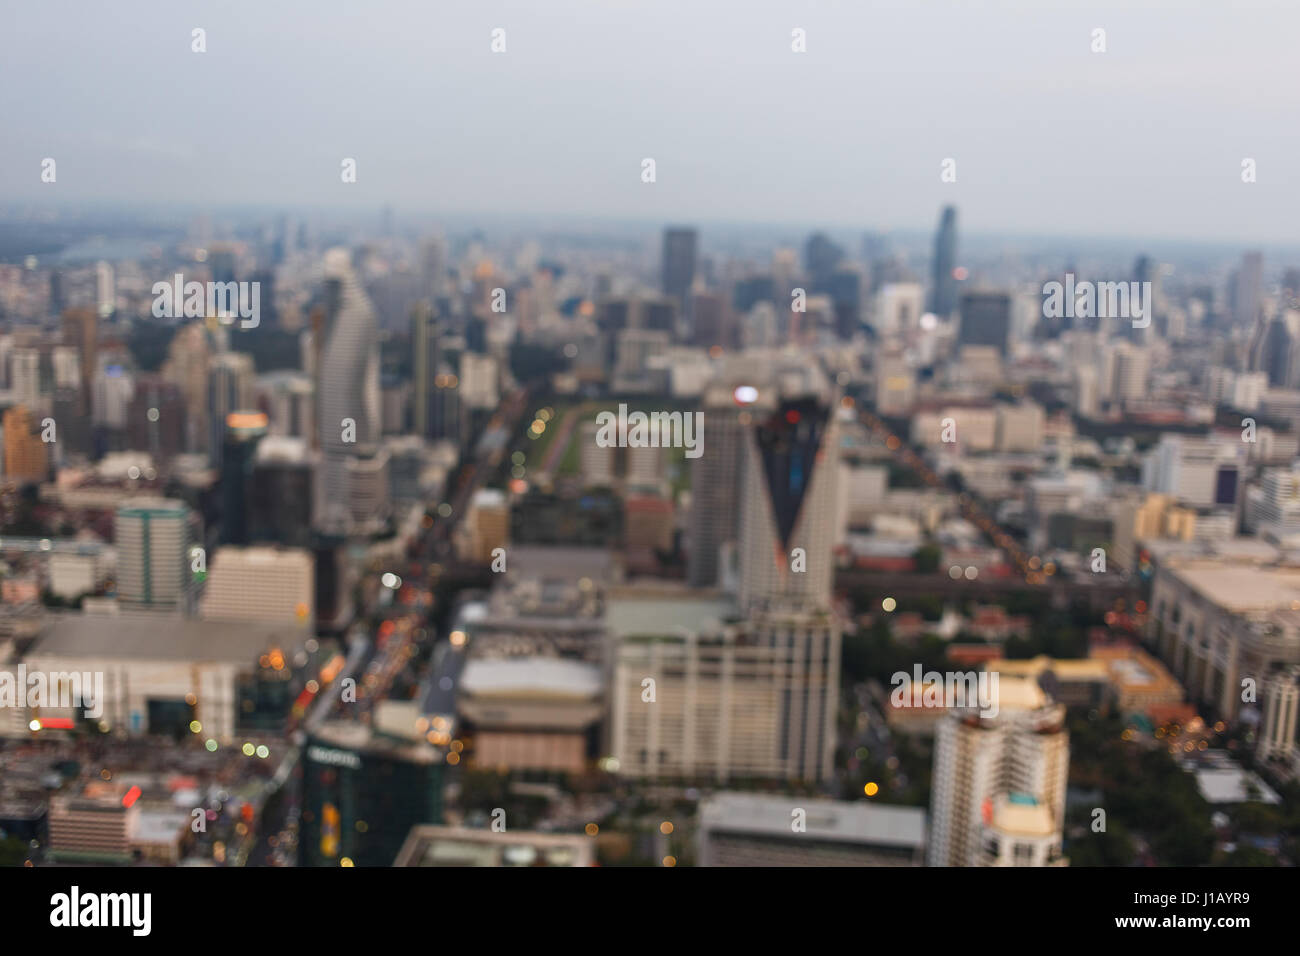 Blurred photography of modern buildings - Stock Image